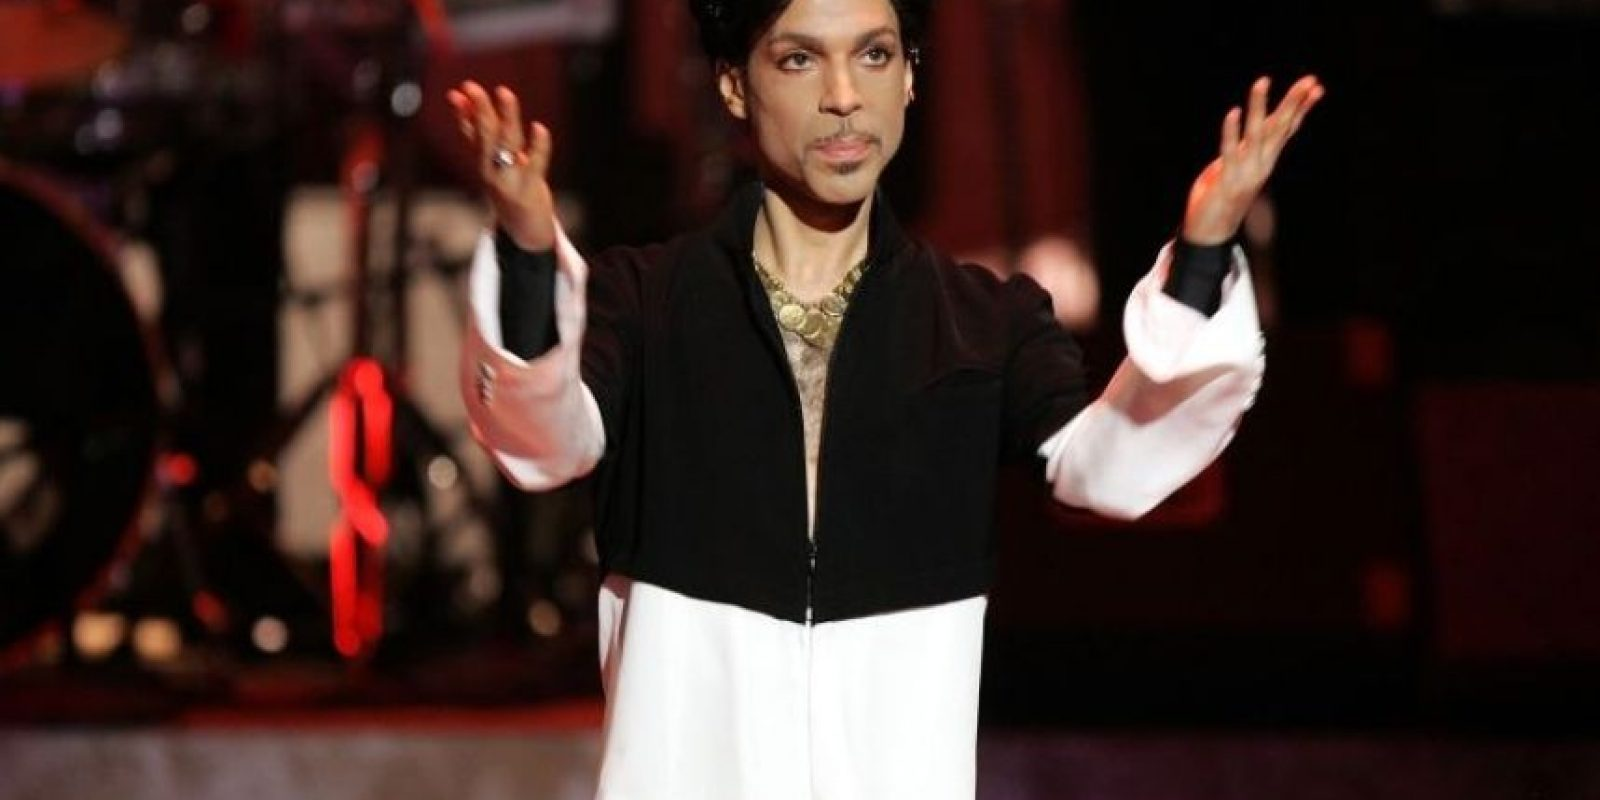 Prince Foto:Getty Images